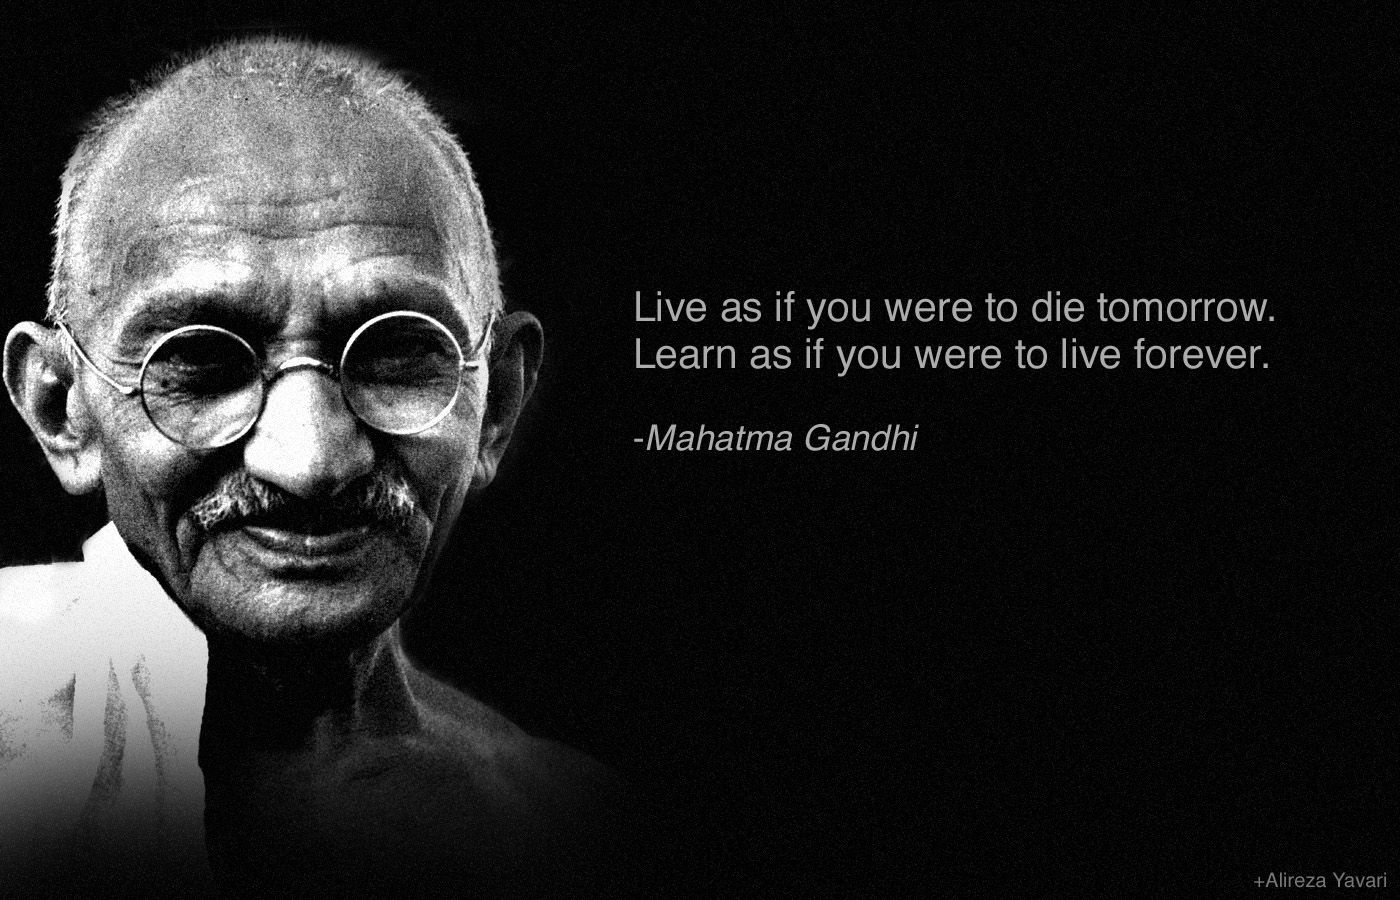 Mahatma Gandhi Quote On Living And Learning Quotes By Famous People Gandhi Quotes People Quotes